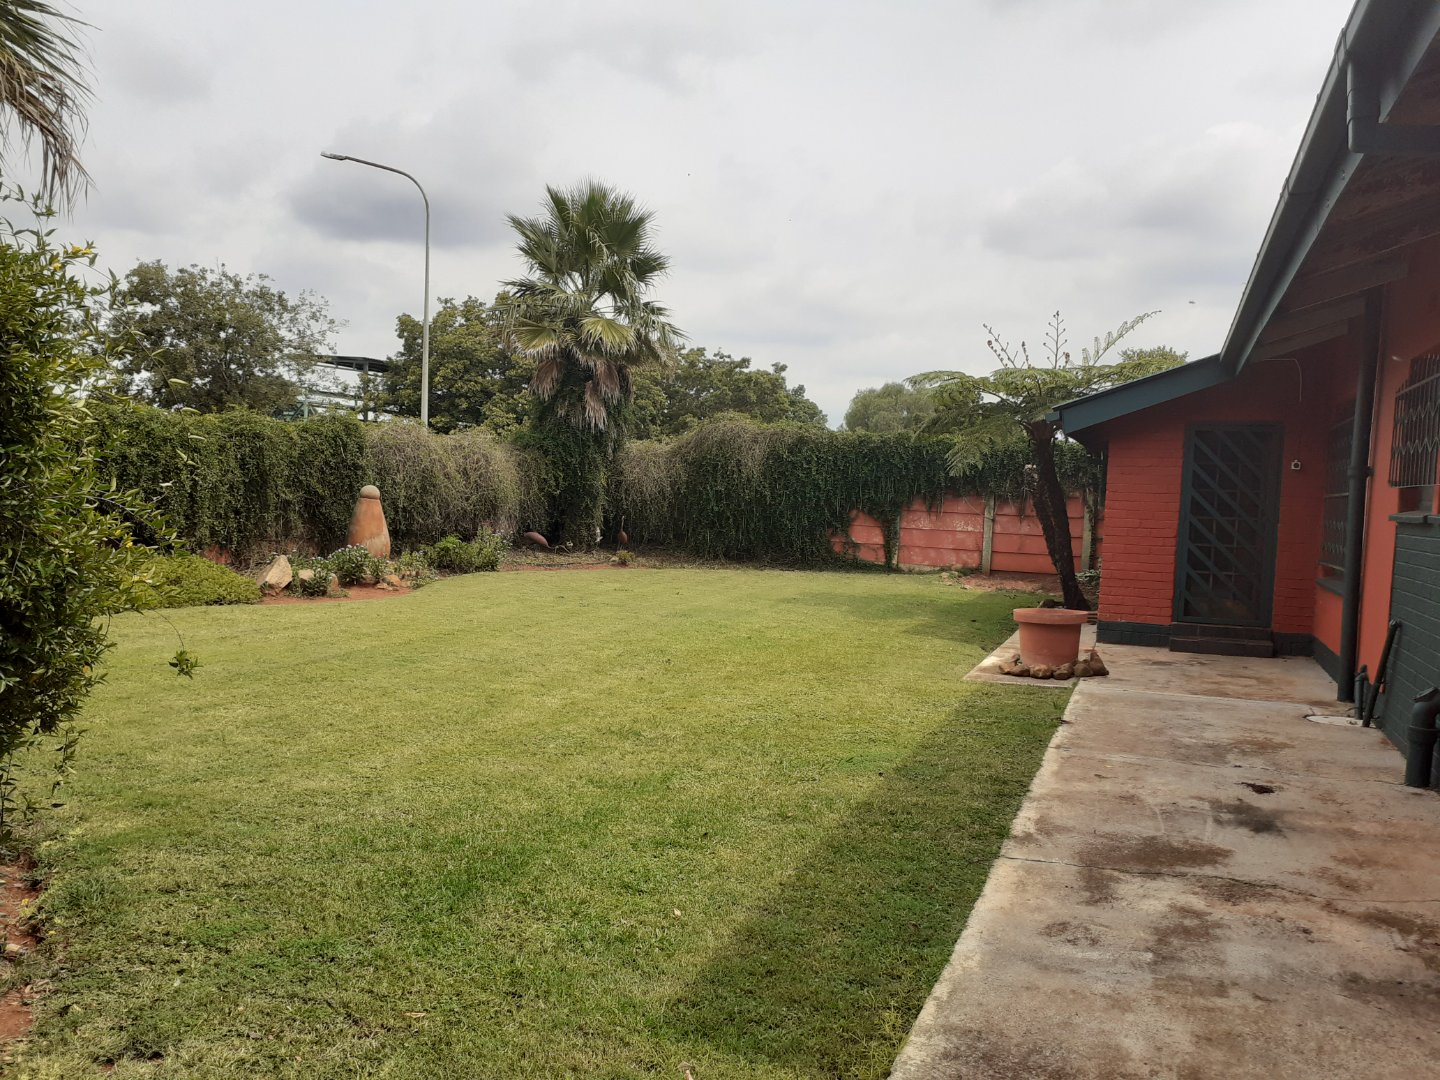 3 BEDROOM HOUSE, A POOL AND A FLATLET FOR SALE IN CARLETONVILLE